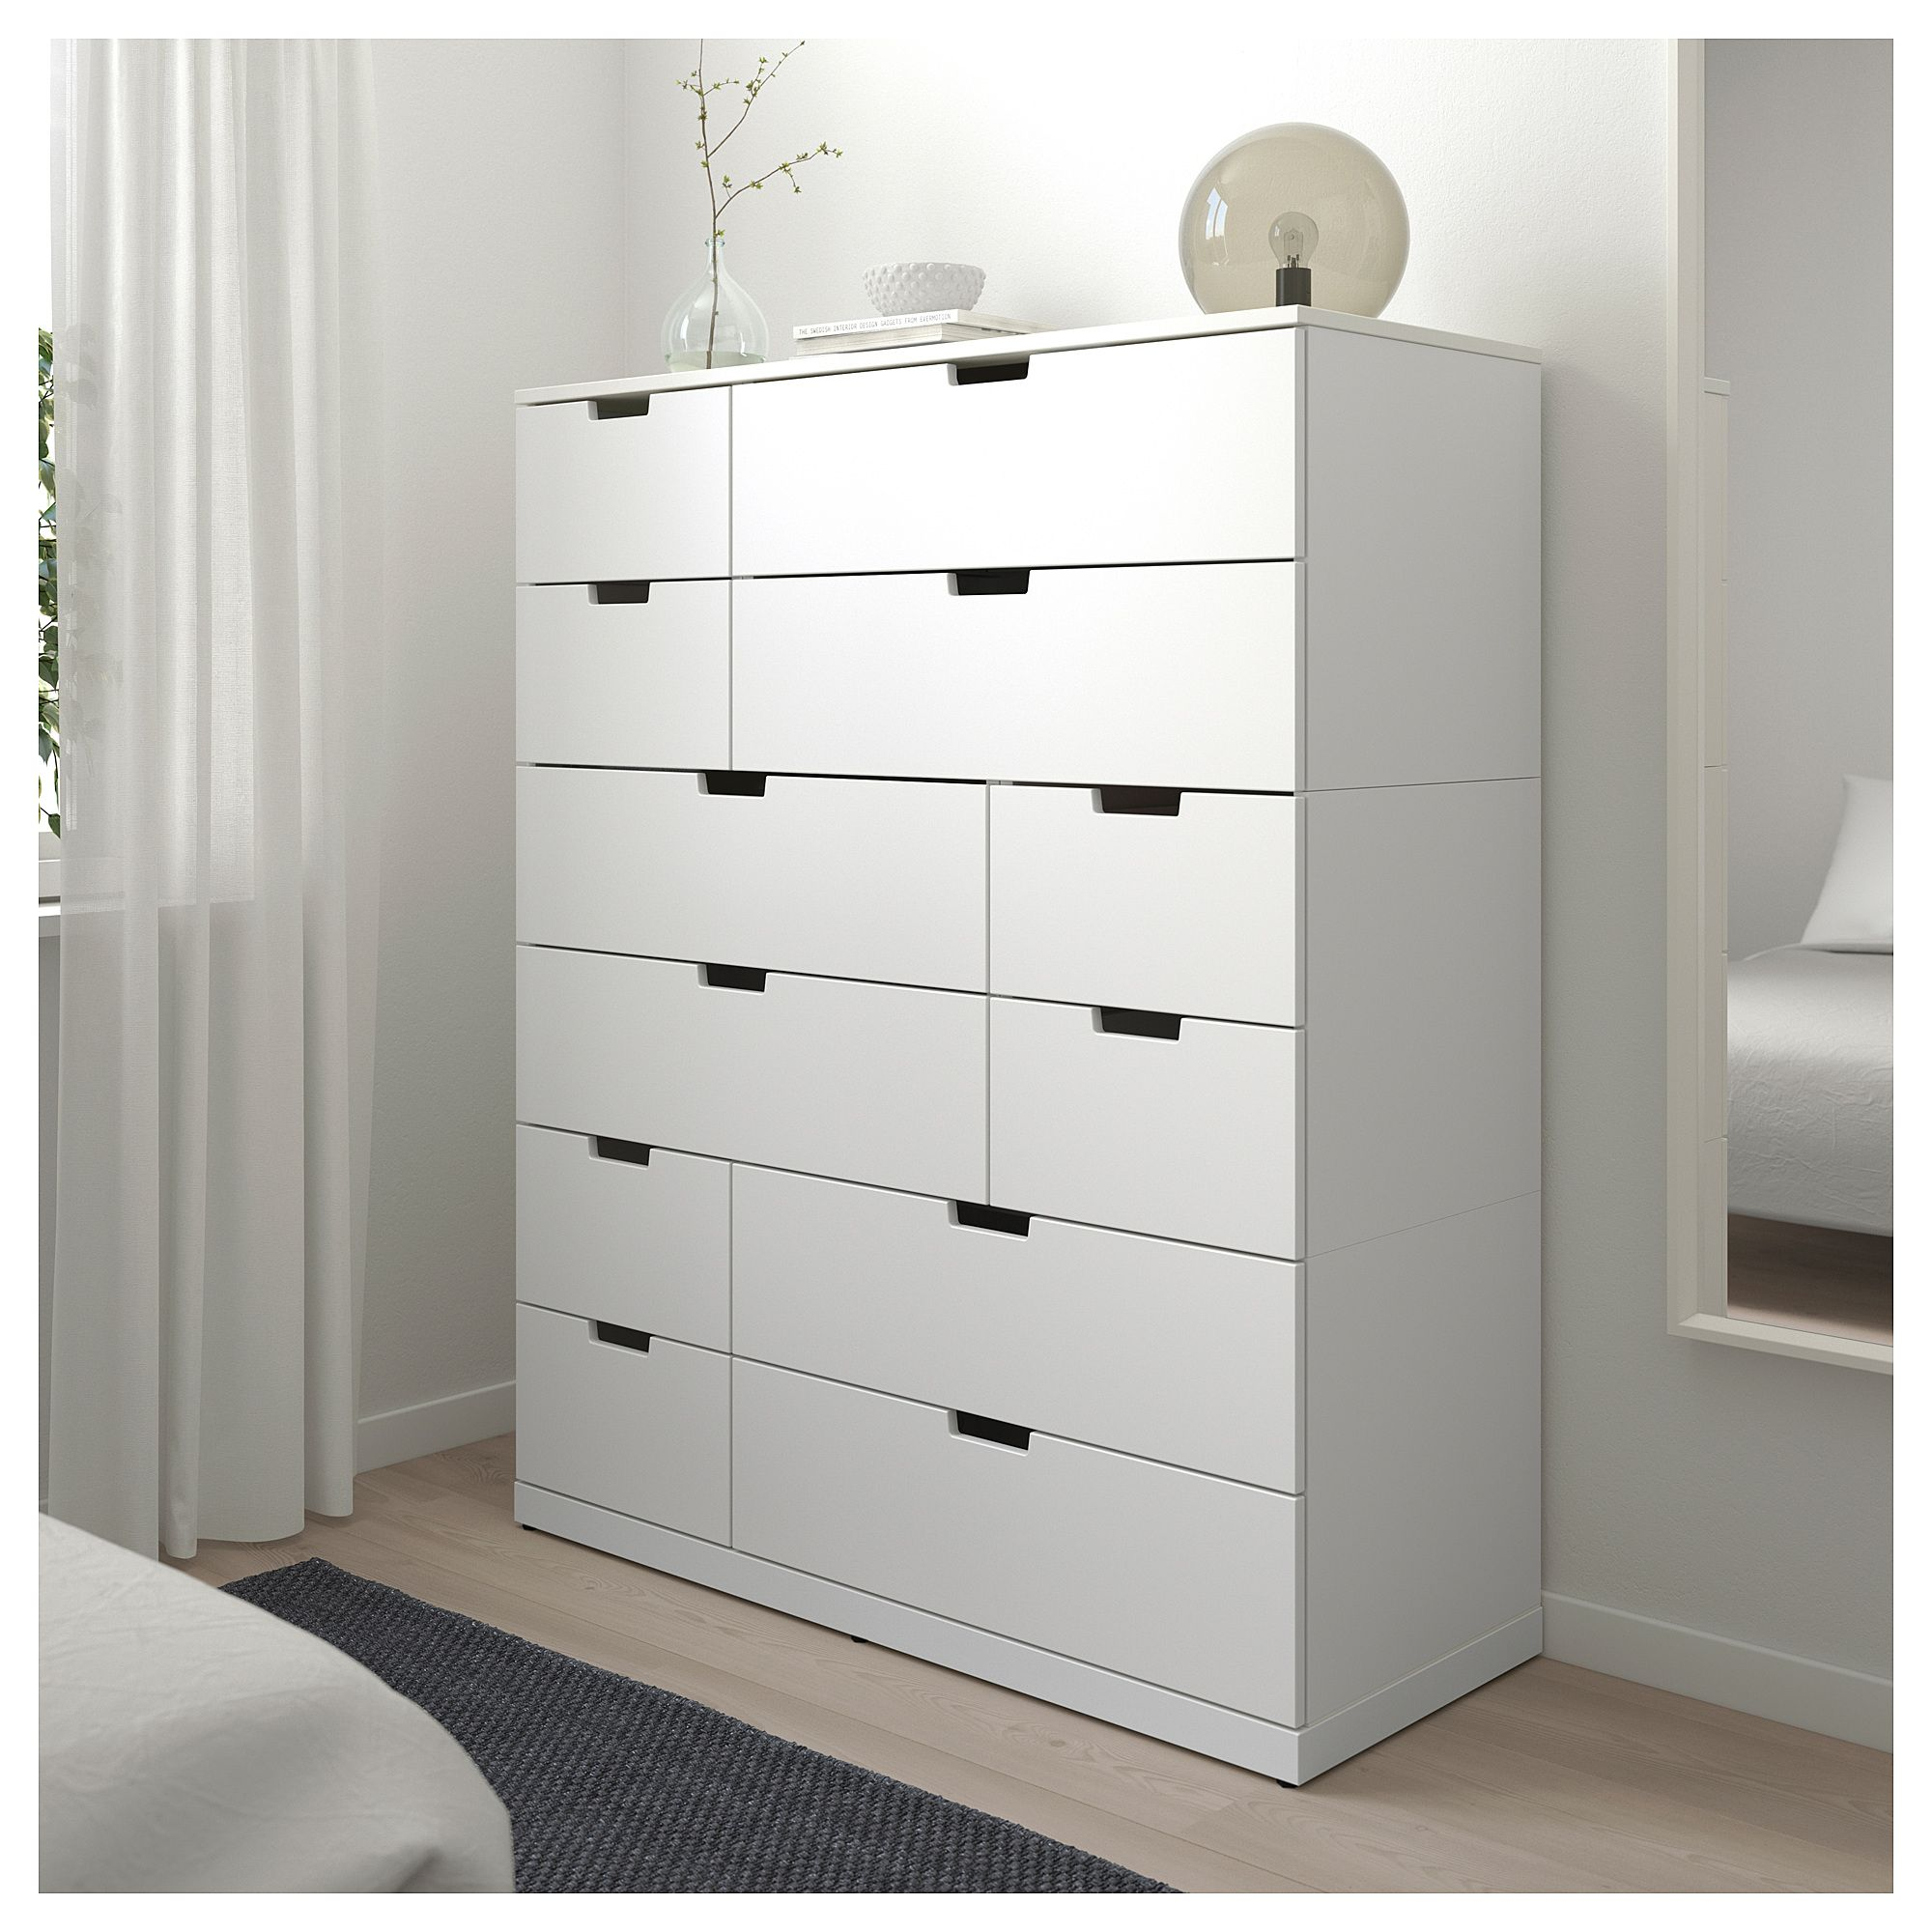 Nordli 12 Drawer Chest White 47 1 4x57 1 8 120x145 Cm